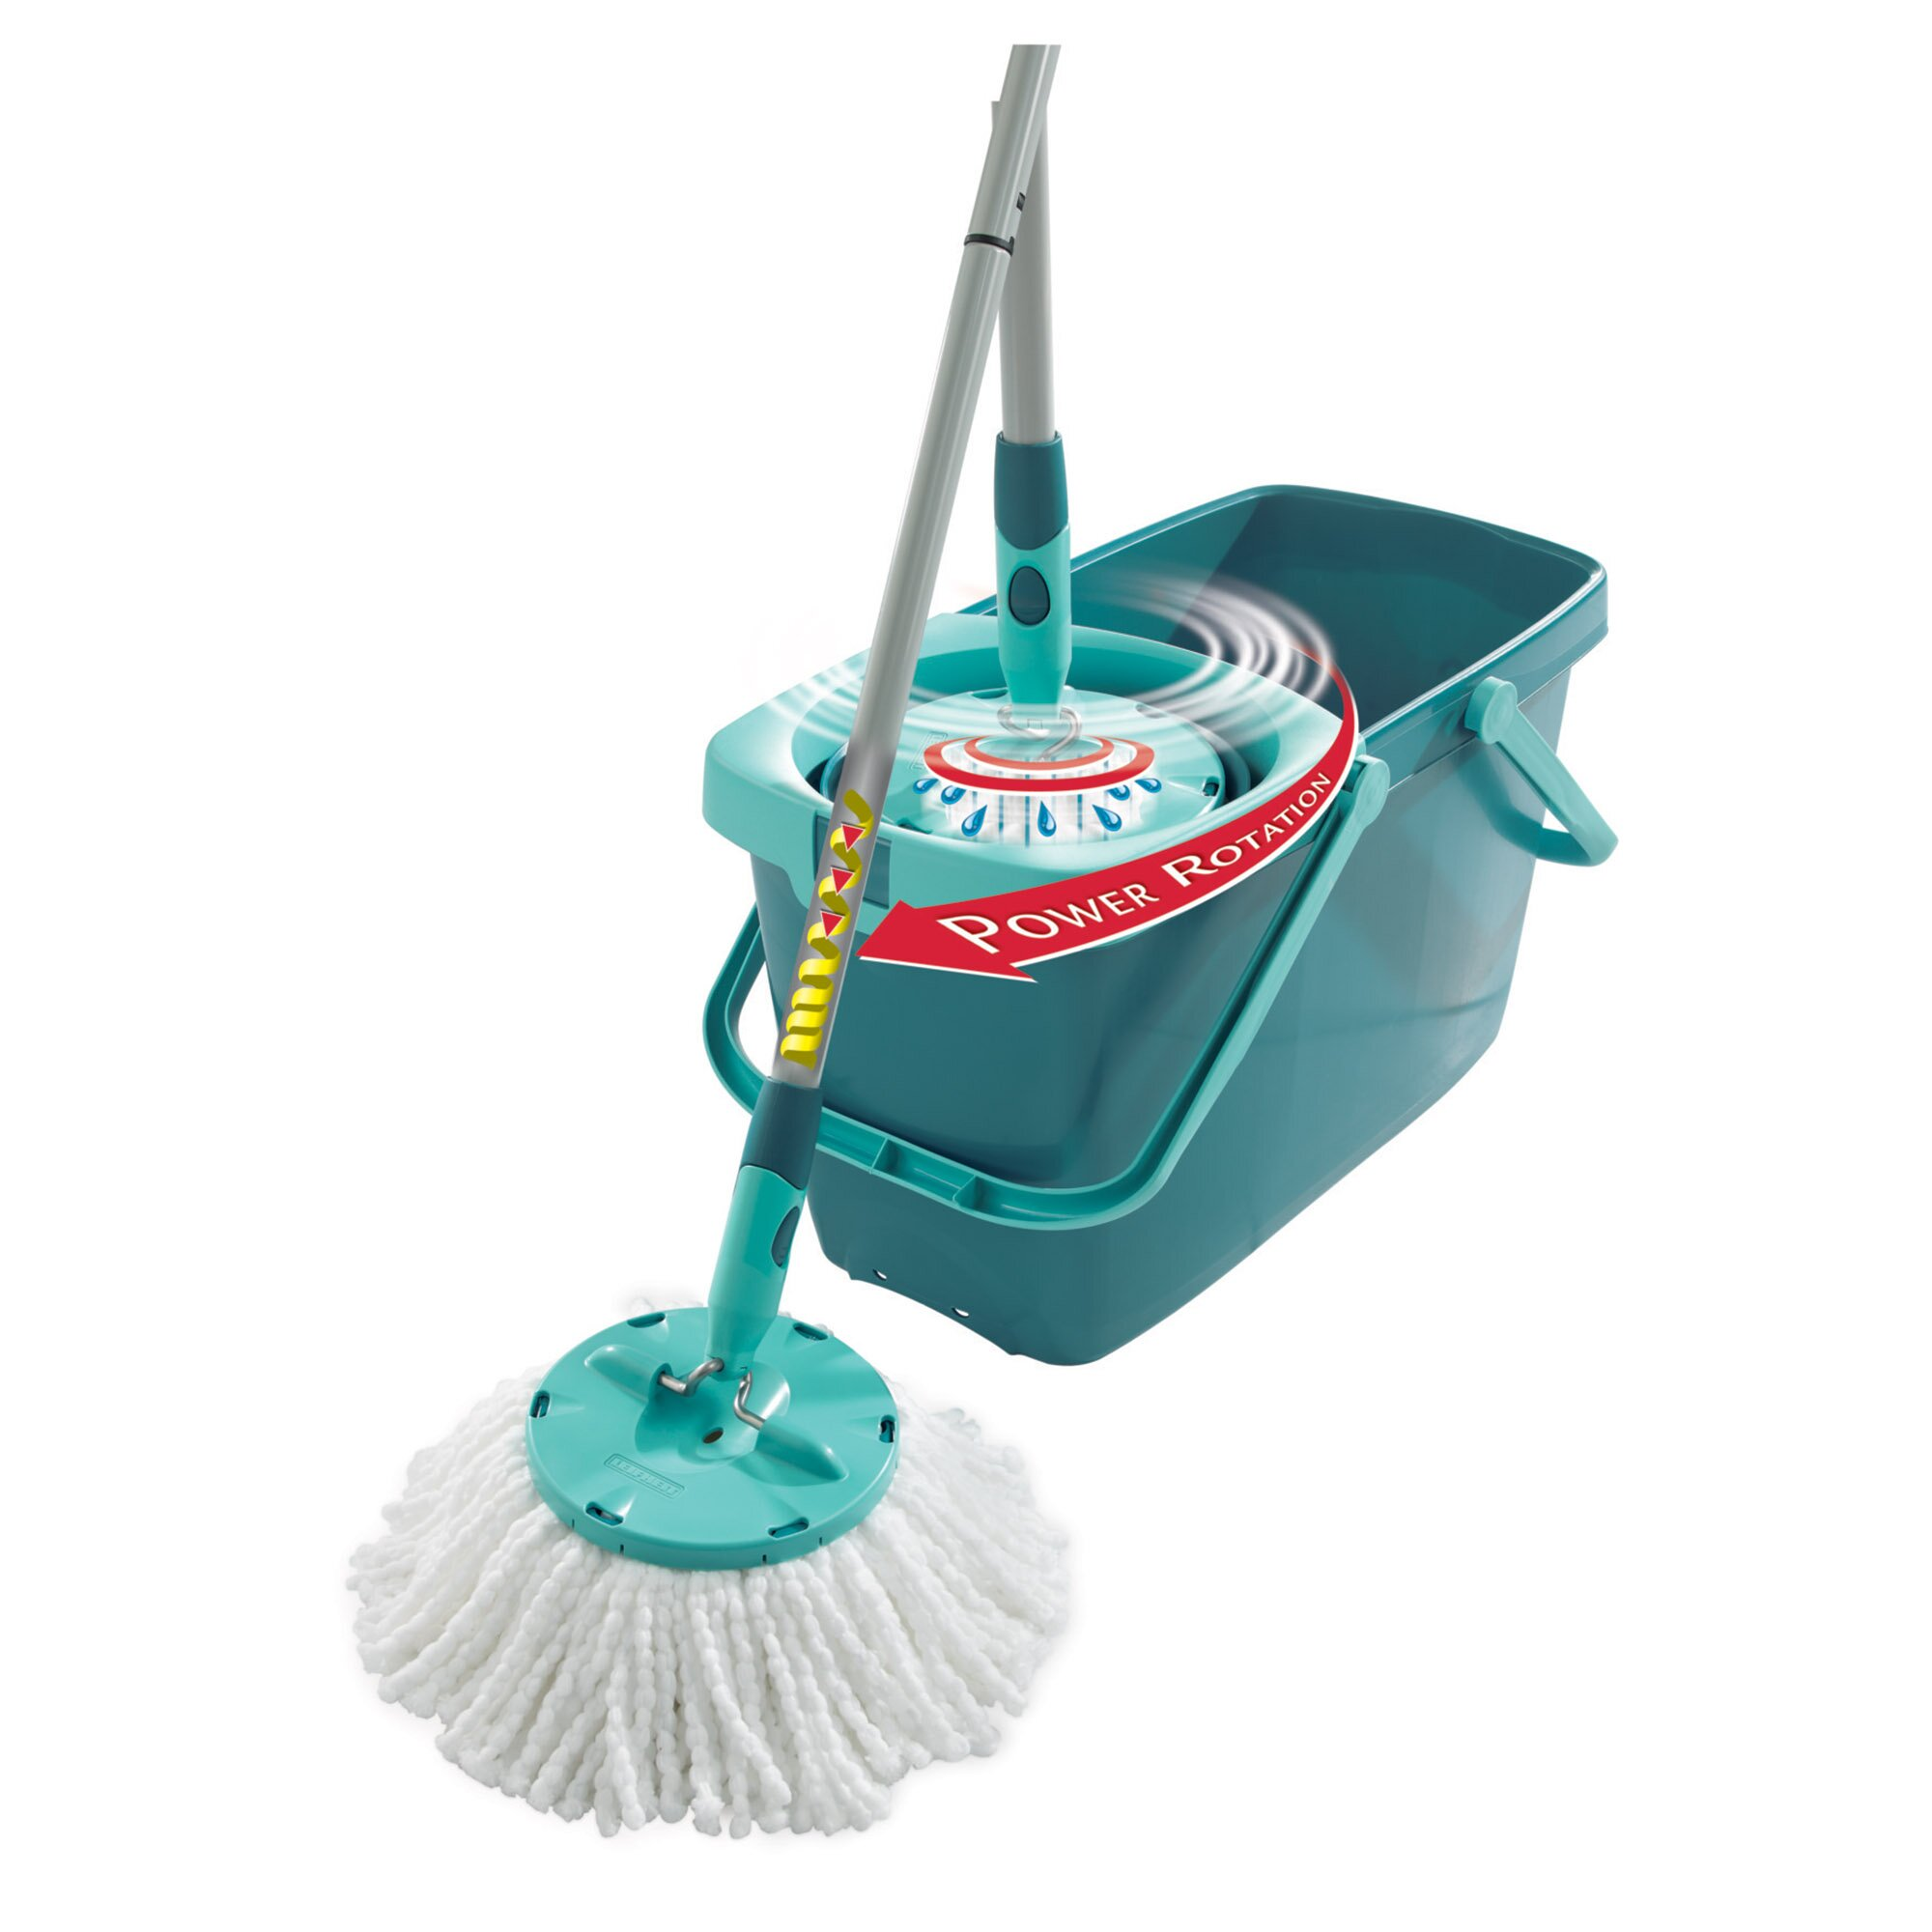 LEIFHEIT Clean Twist Mop Set with Mop and Spin Bucket  : LEIFHEIT Clean Twist Mop Set with Mop and Spin Bucket 52019 from www.wayfair.com size 2000 x 2000 jpeg 228kB